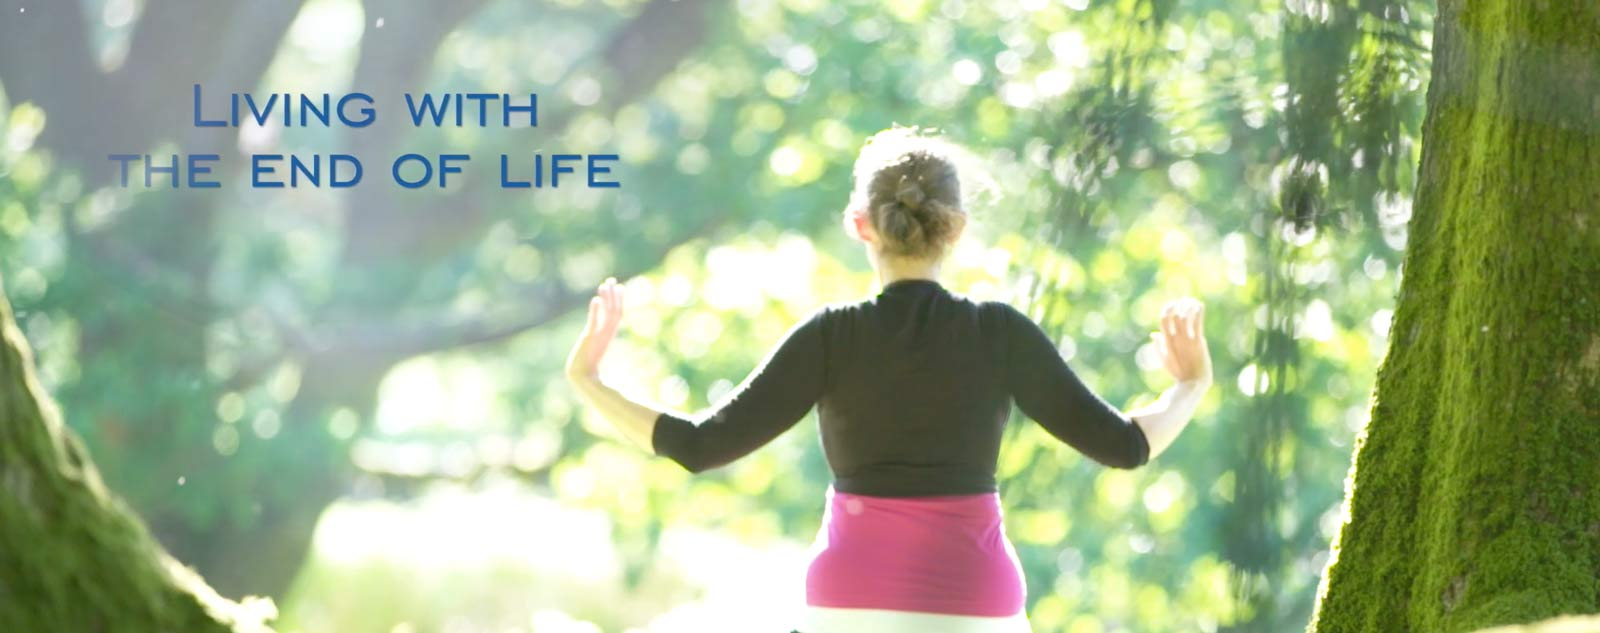 Living with the End of Life - image of Kate Carter, Senior Dru Yoga teacher trainer